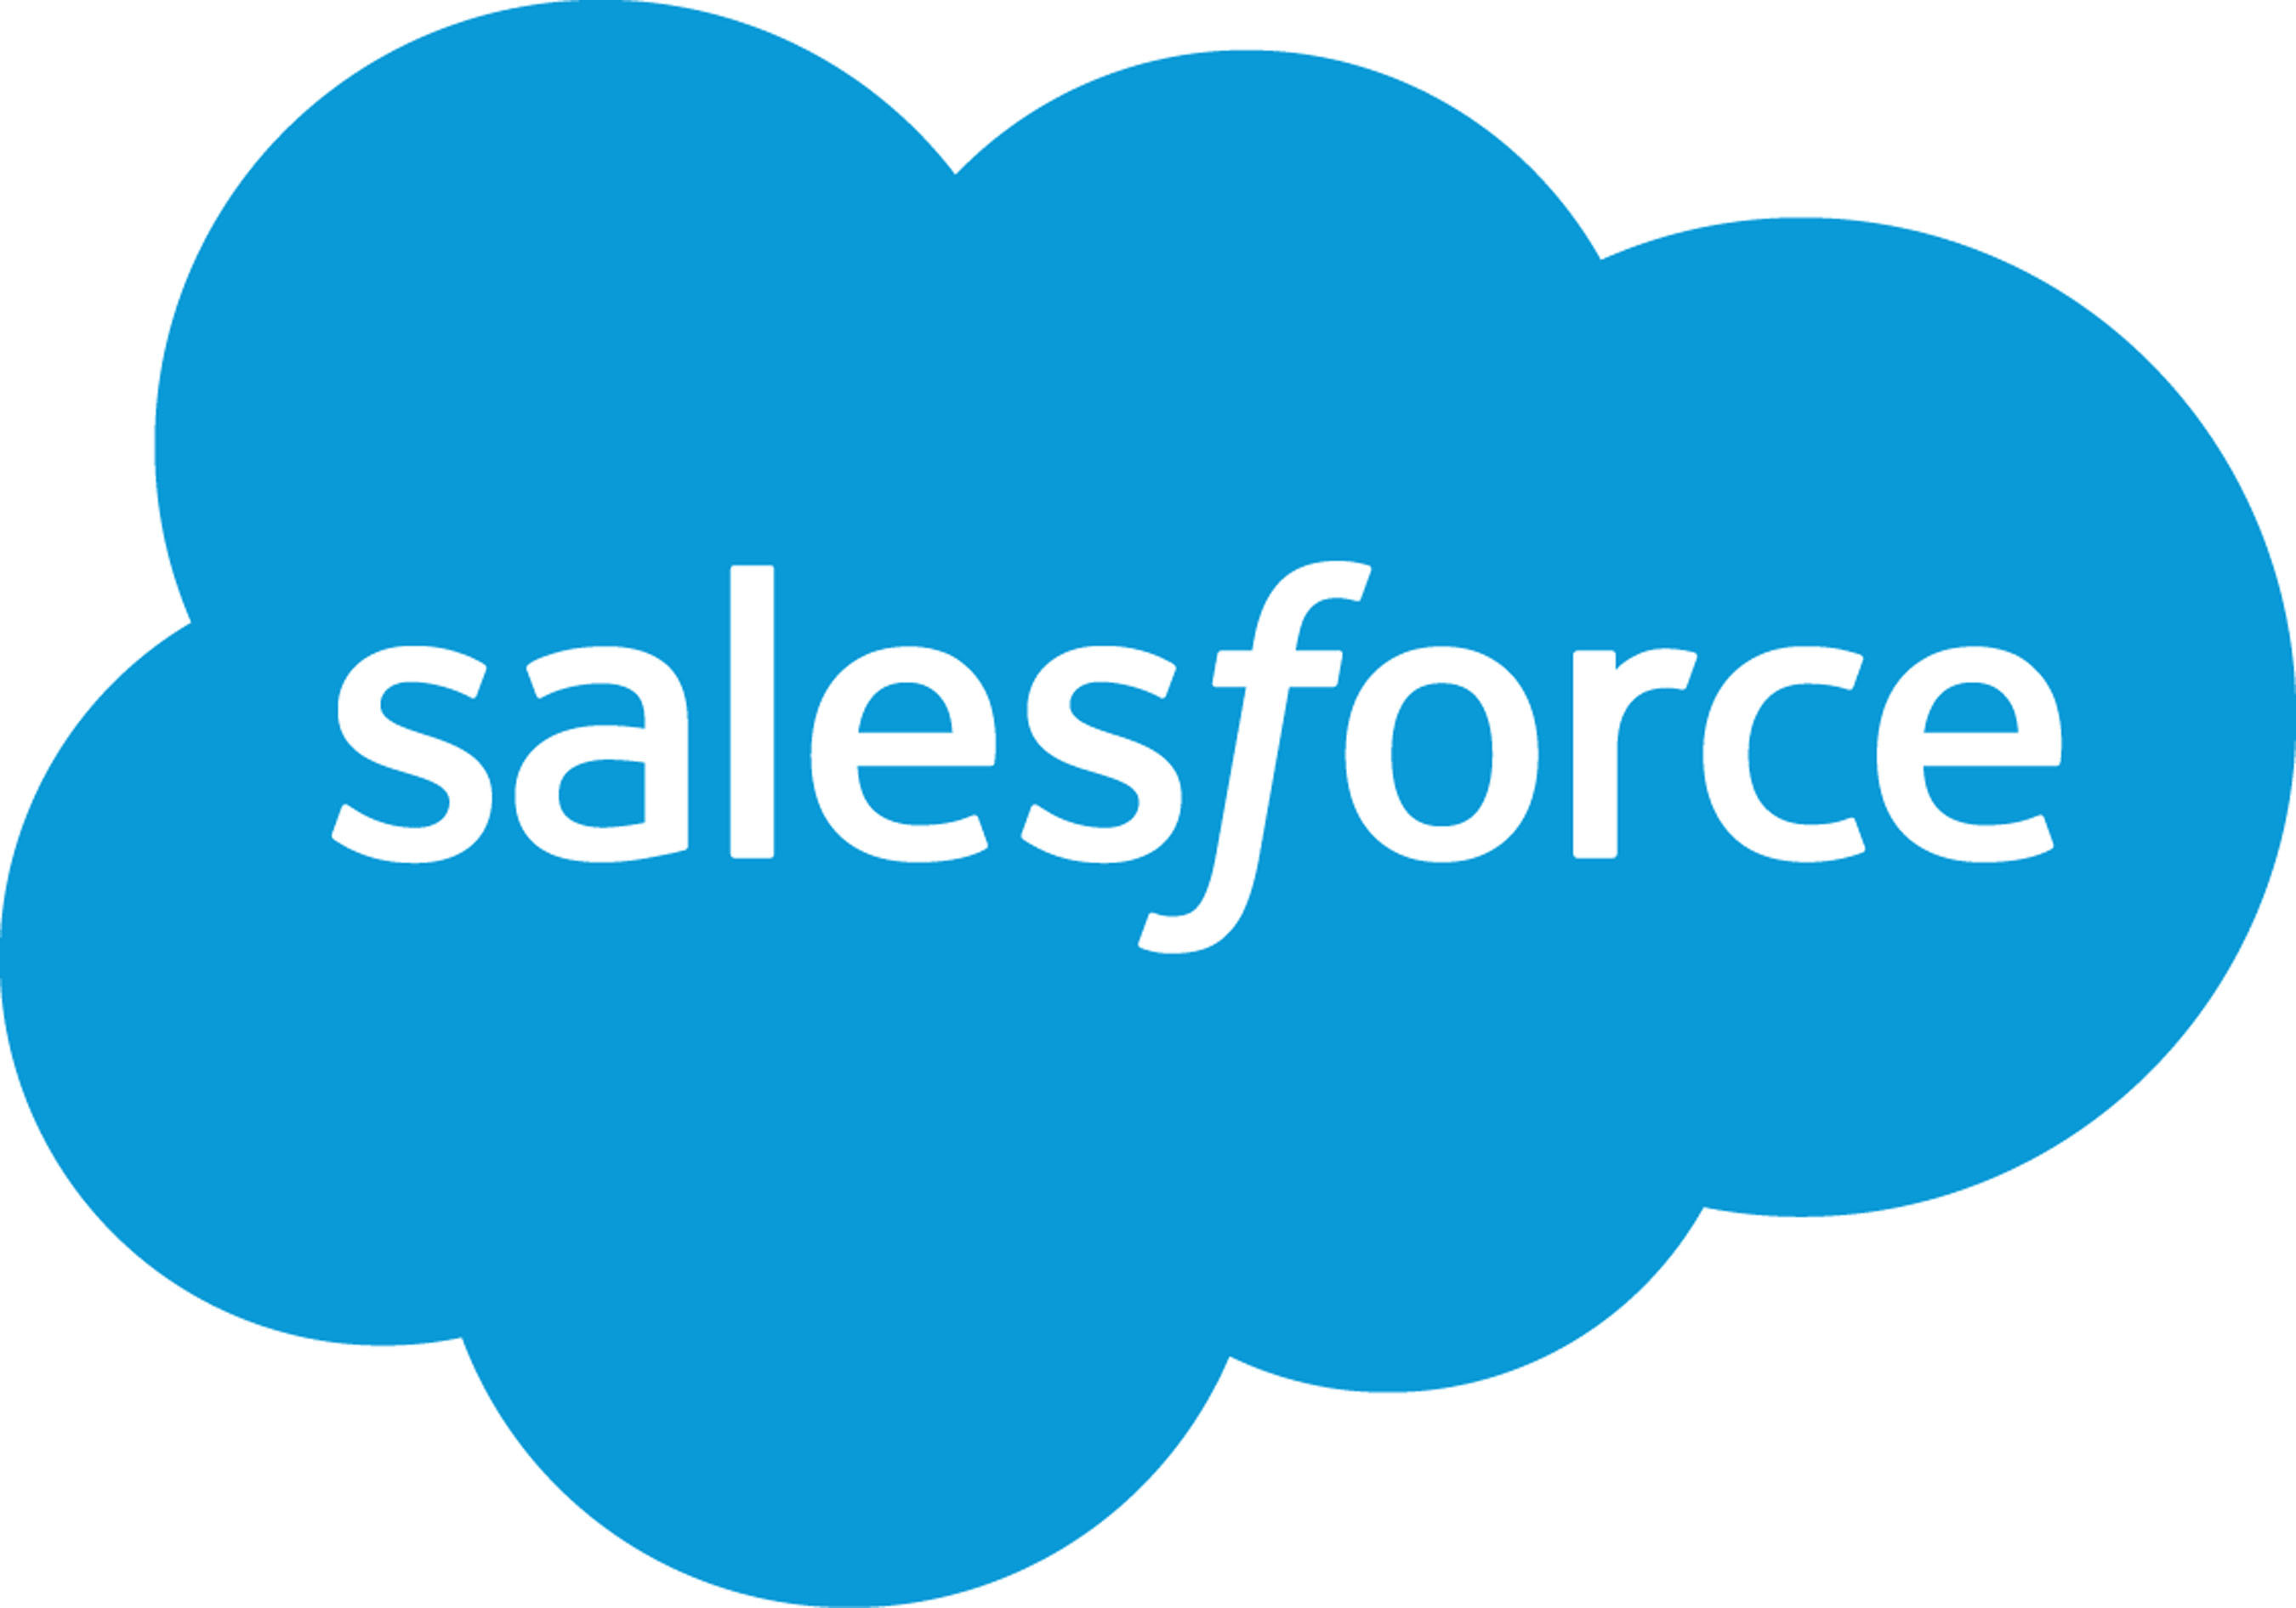 Salesforce Announces Dreamforce 2015, The Largest Software Conference on Earth